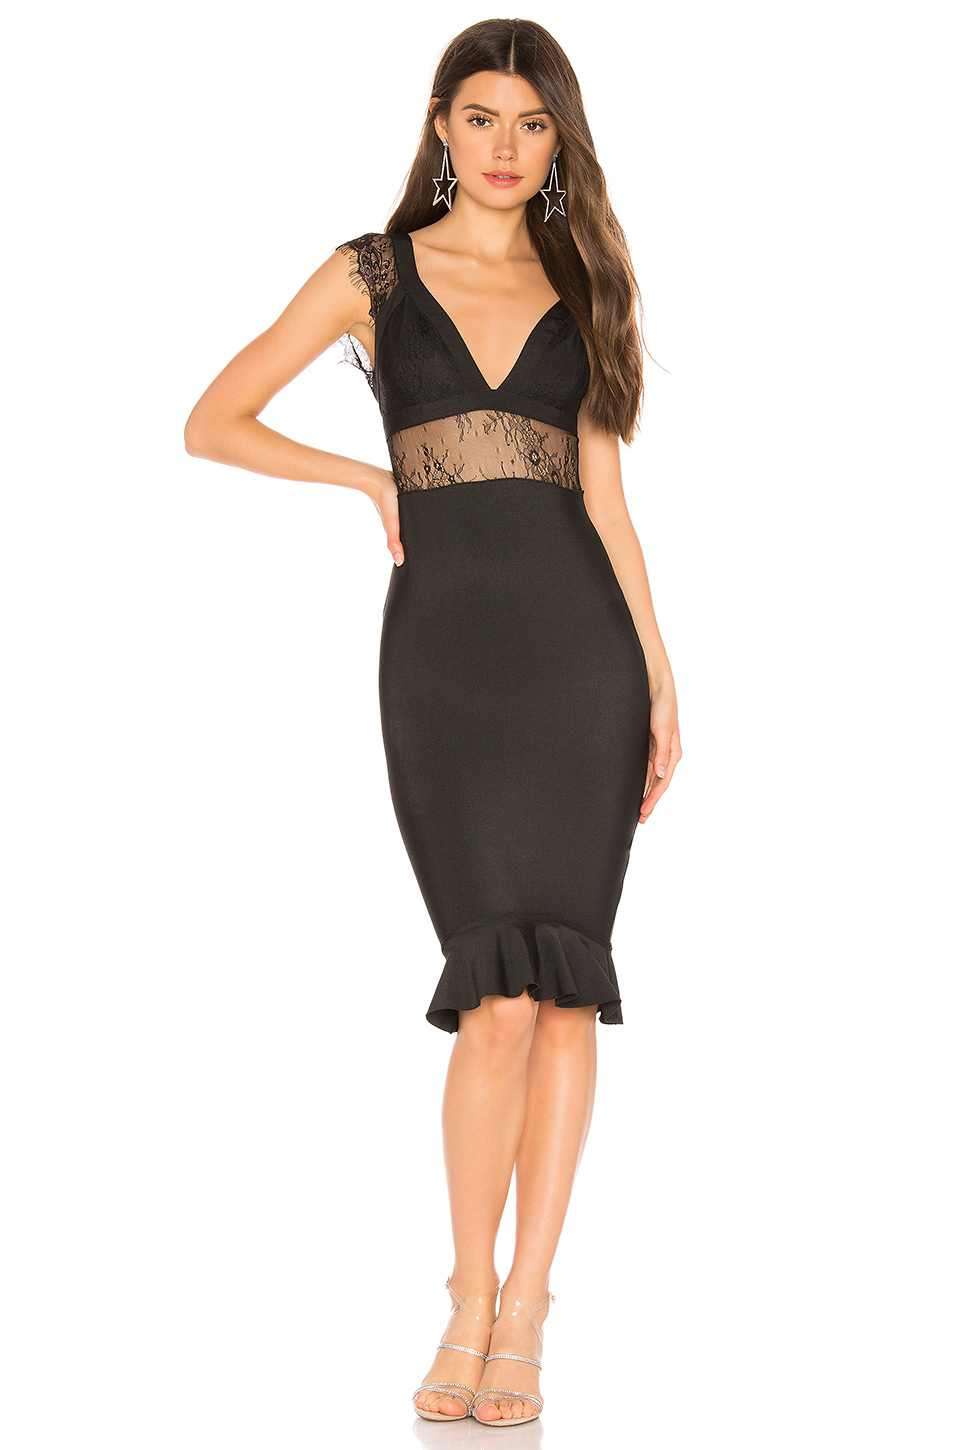 ecf67cb613d7 Superdown Adeliaide Lace Dress In Black. REVOLVE